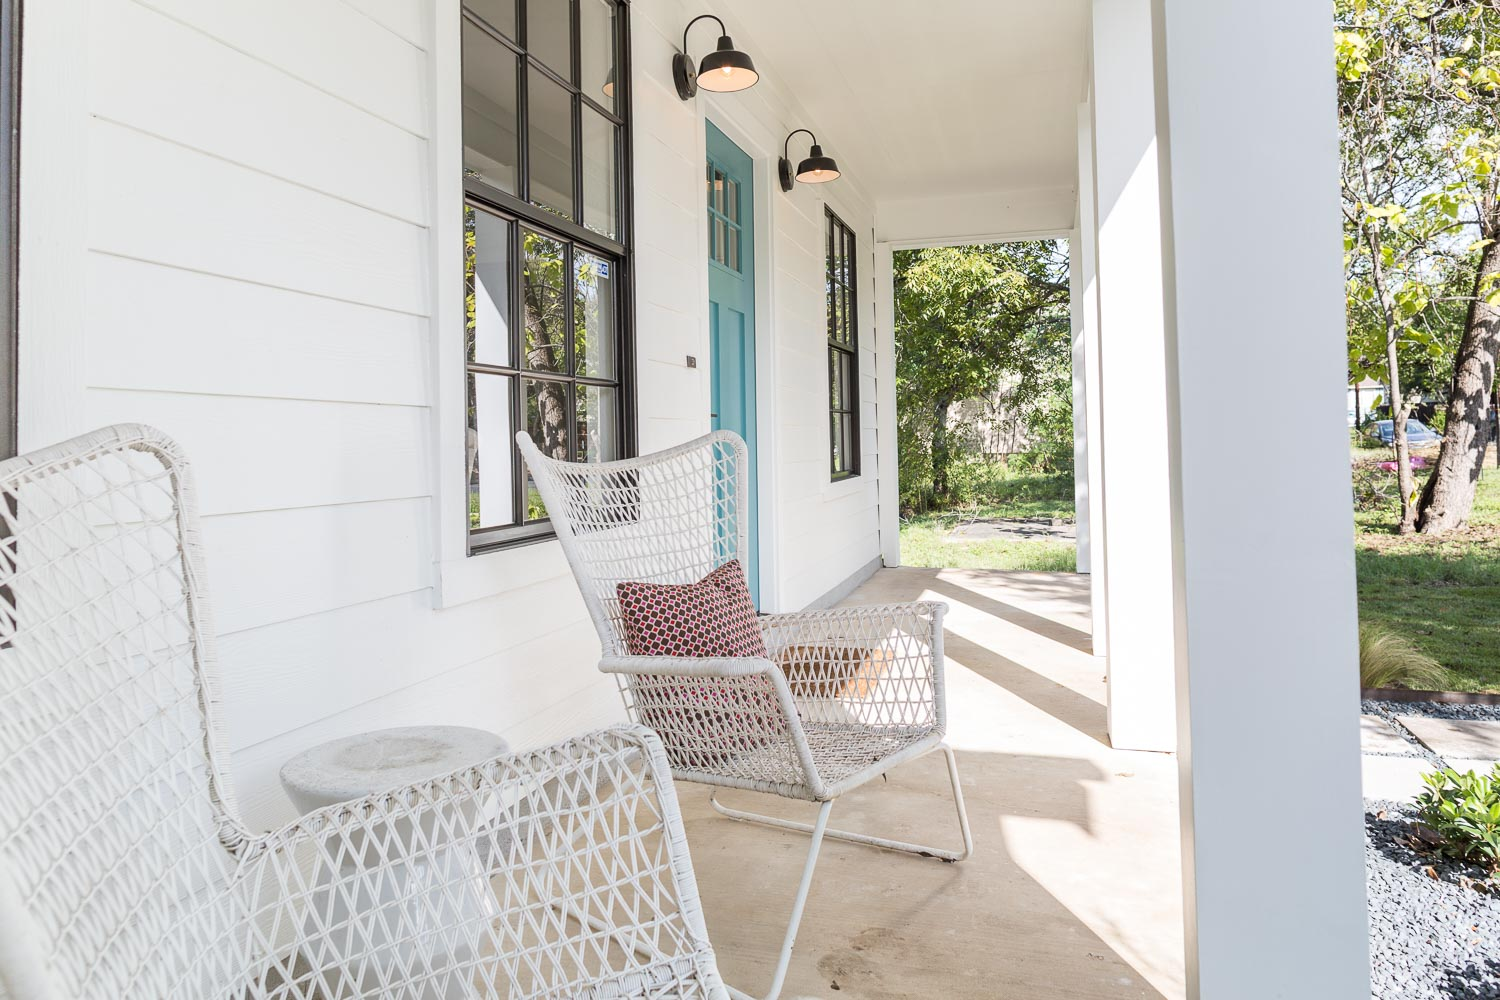 Modern Farmhouse front porch with bell school house light fixtures, white large columns, black windows, and aqua door.